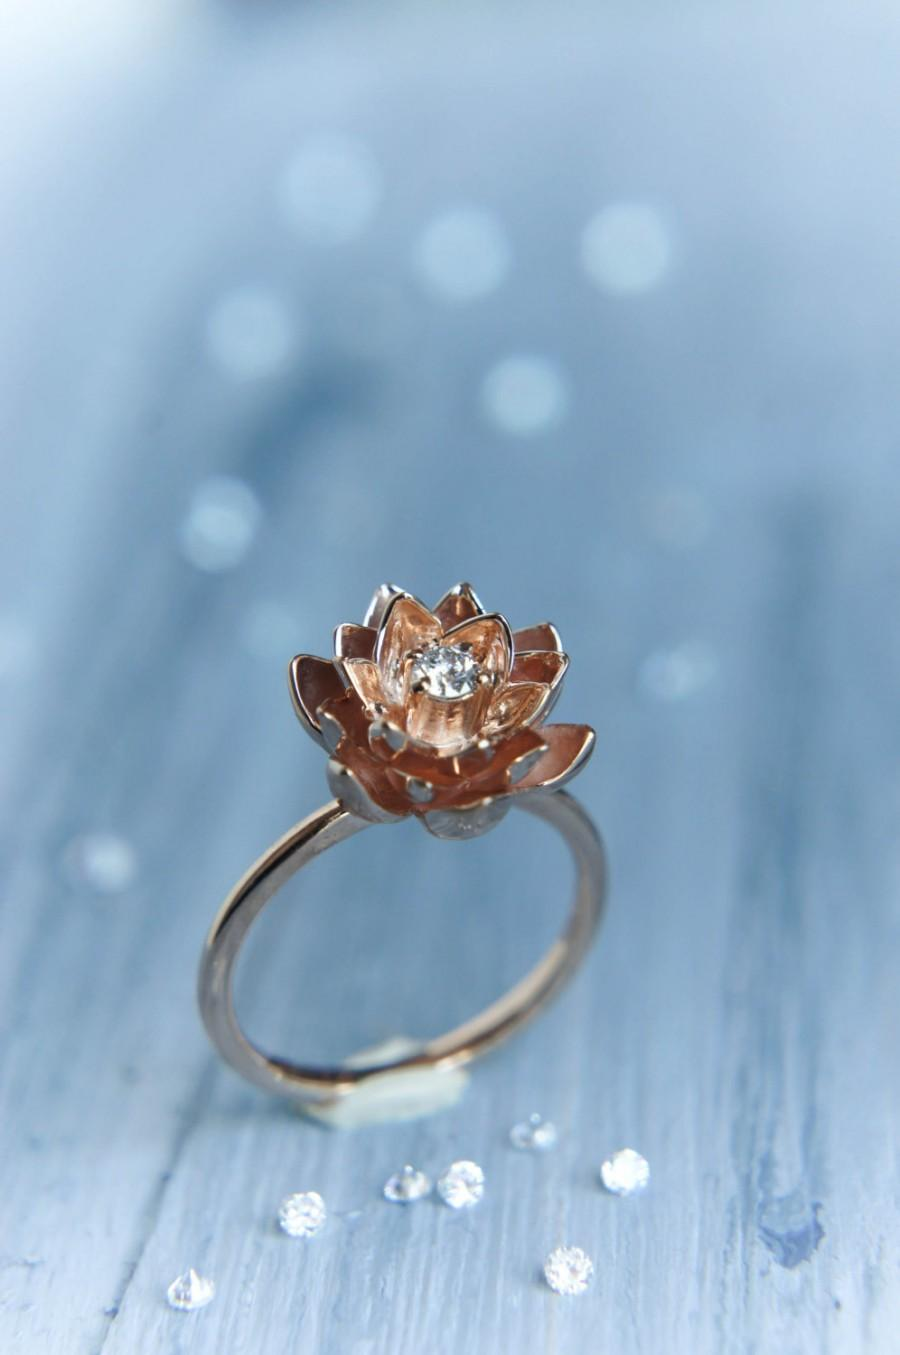 patented love fullxfull zoom rings lotus blooming petra gorgeous rose il engagement diamond flower listing infinity beautiful ever design unique ring